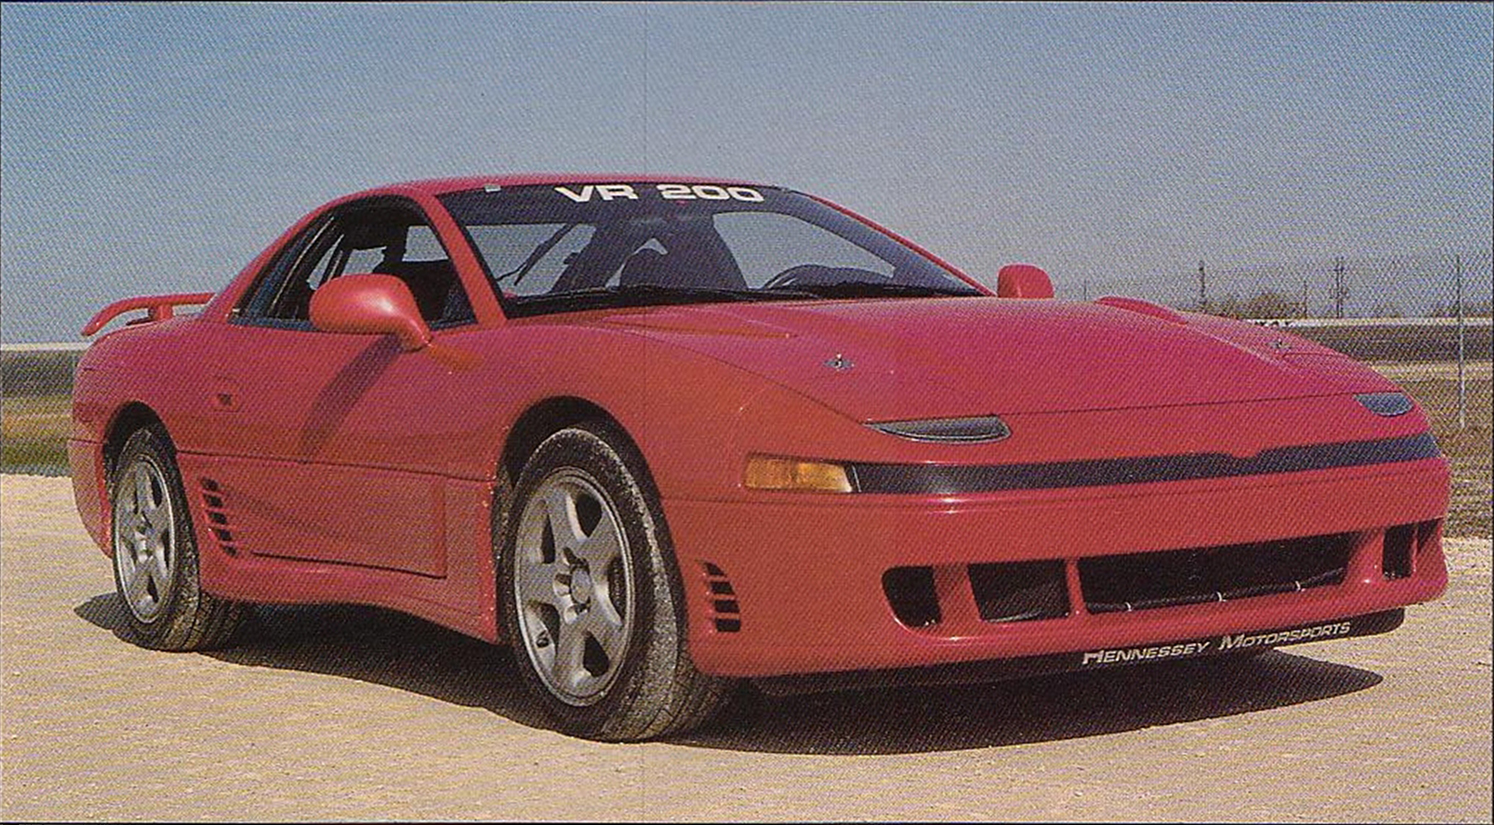 The Hennessey Mitsubishi 3000GT VR-200,equipped with high flow twin turbos, it developed 450 bhp.